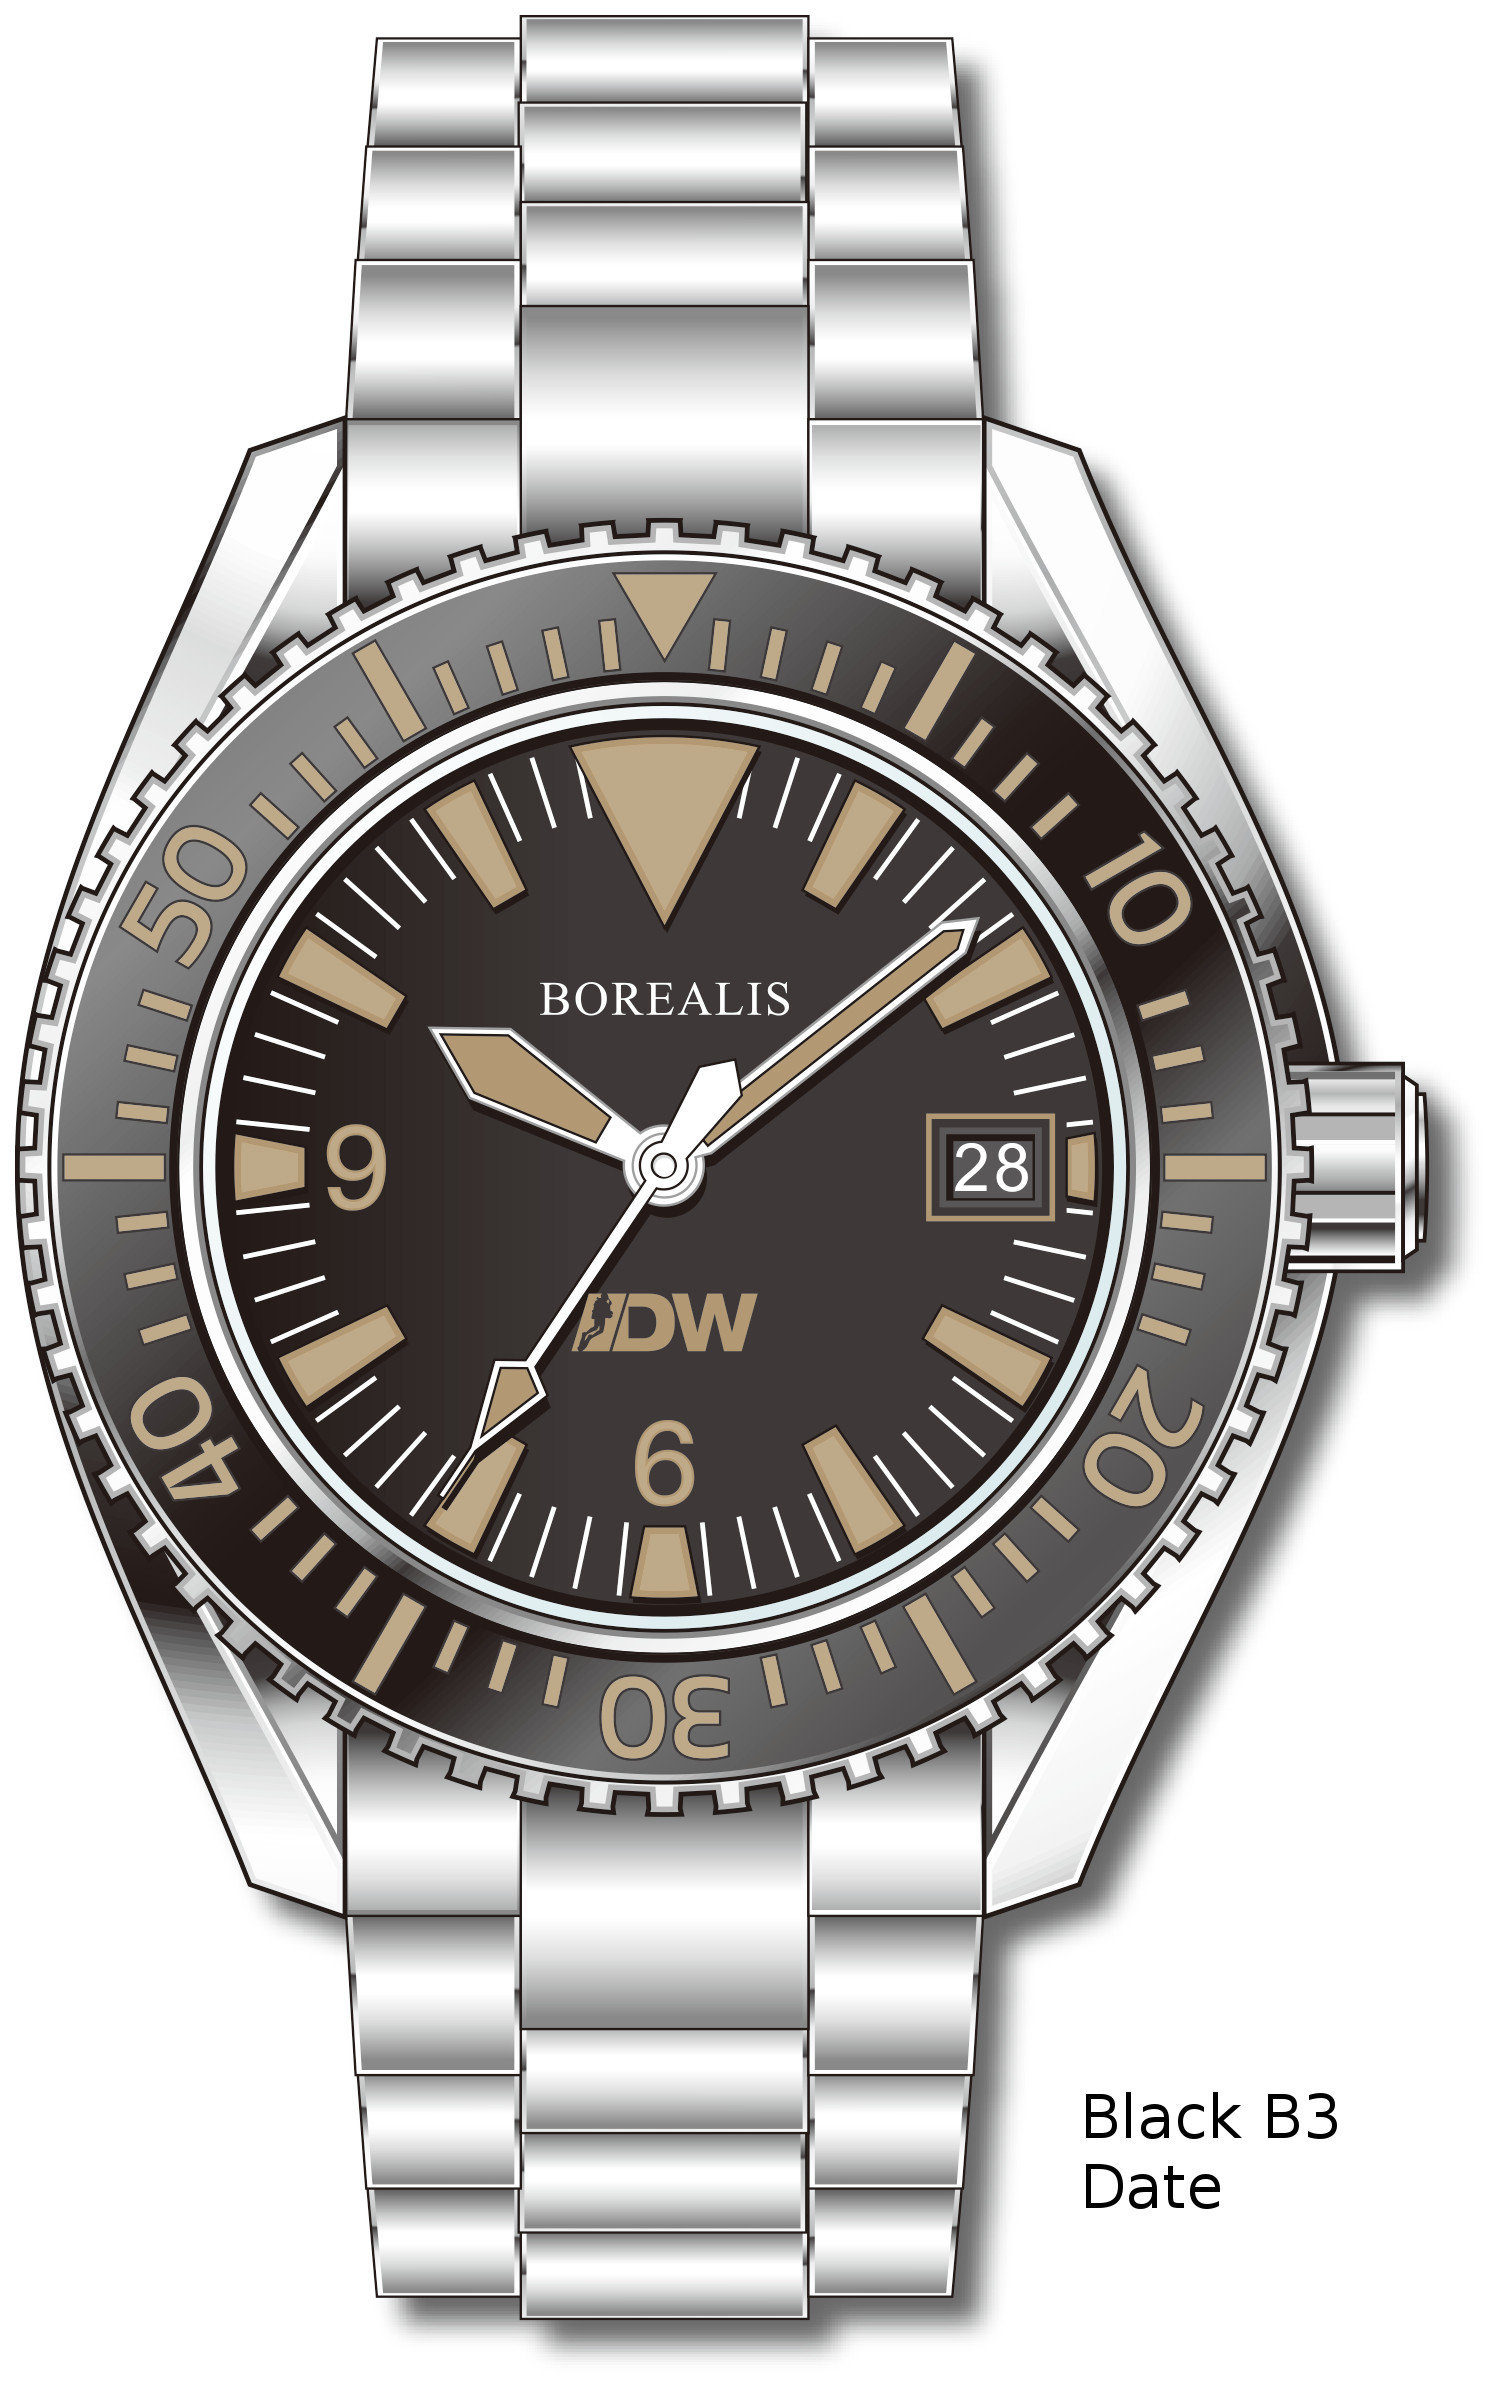 Pre-Order Borealis Estoril 300 for Diver's Watches Facebook Group Black Dial Big Triangle Date Black B3 Date EDWFBGBLACKB3DT